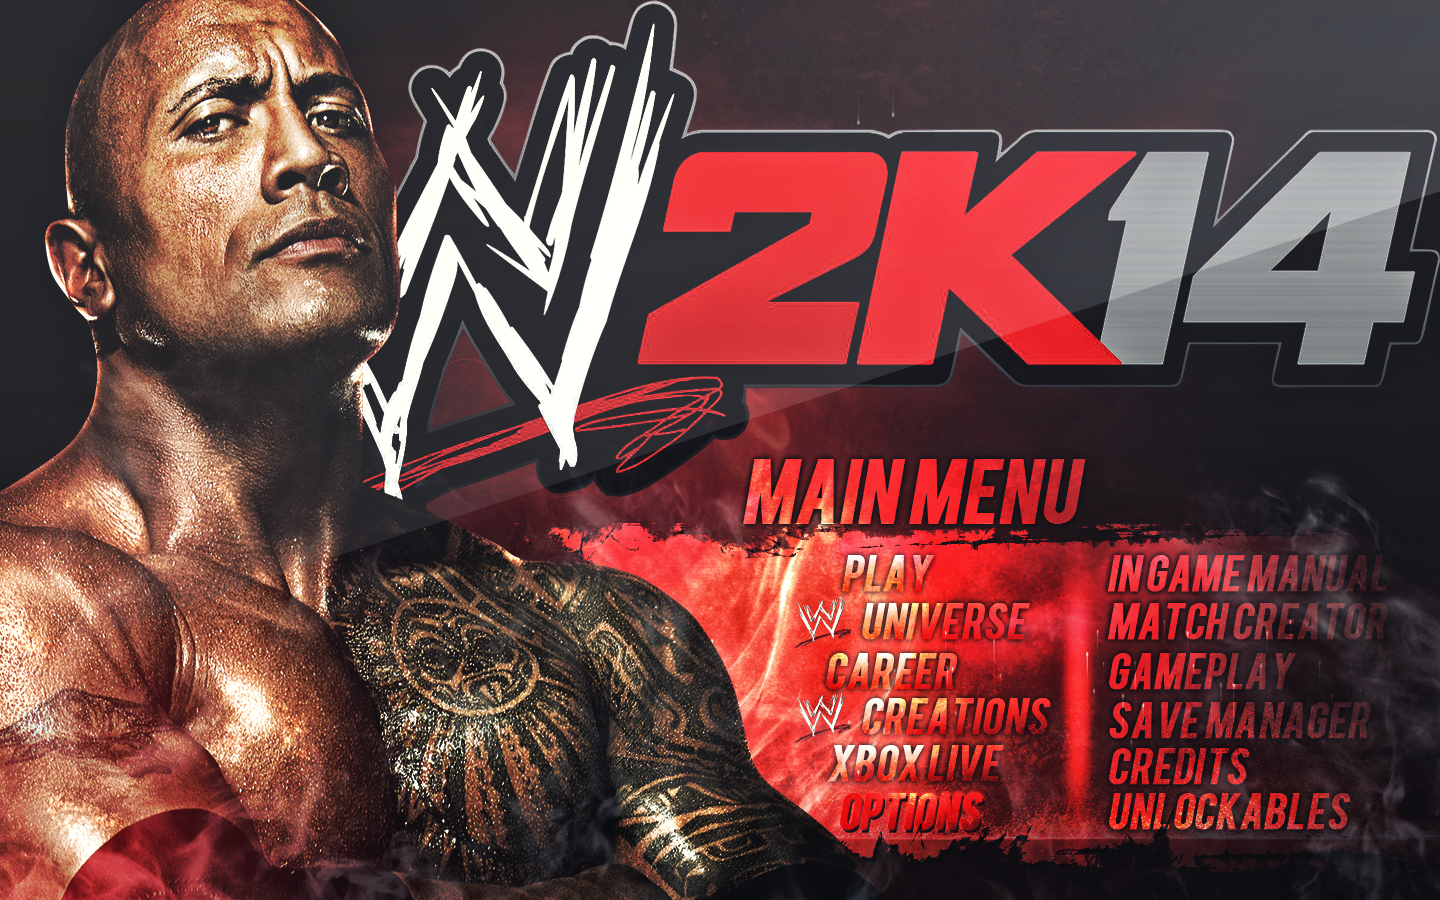 Download wwe 2k14 game for pc full version.